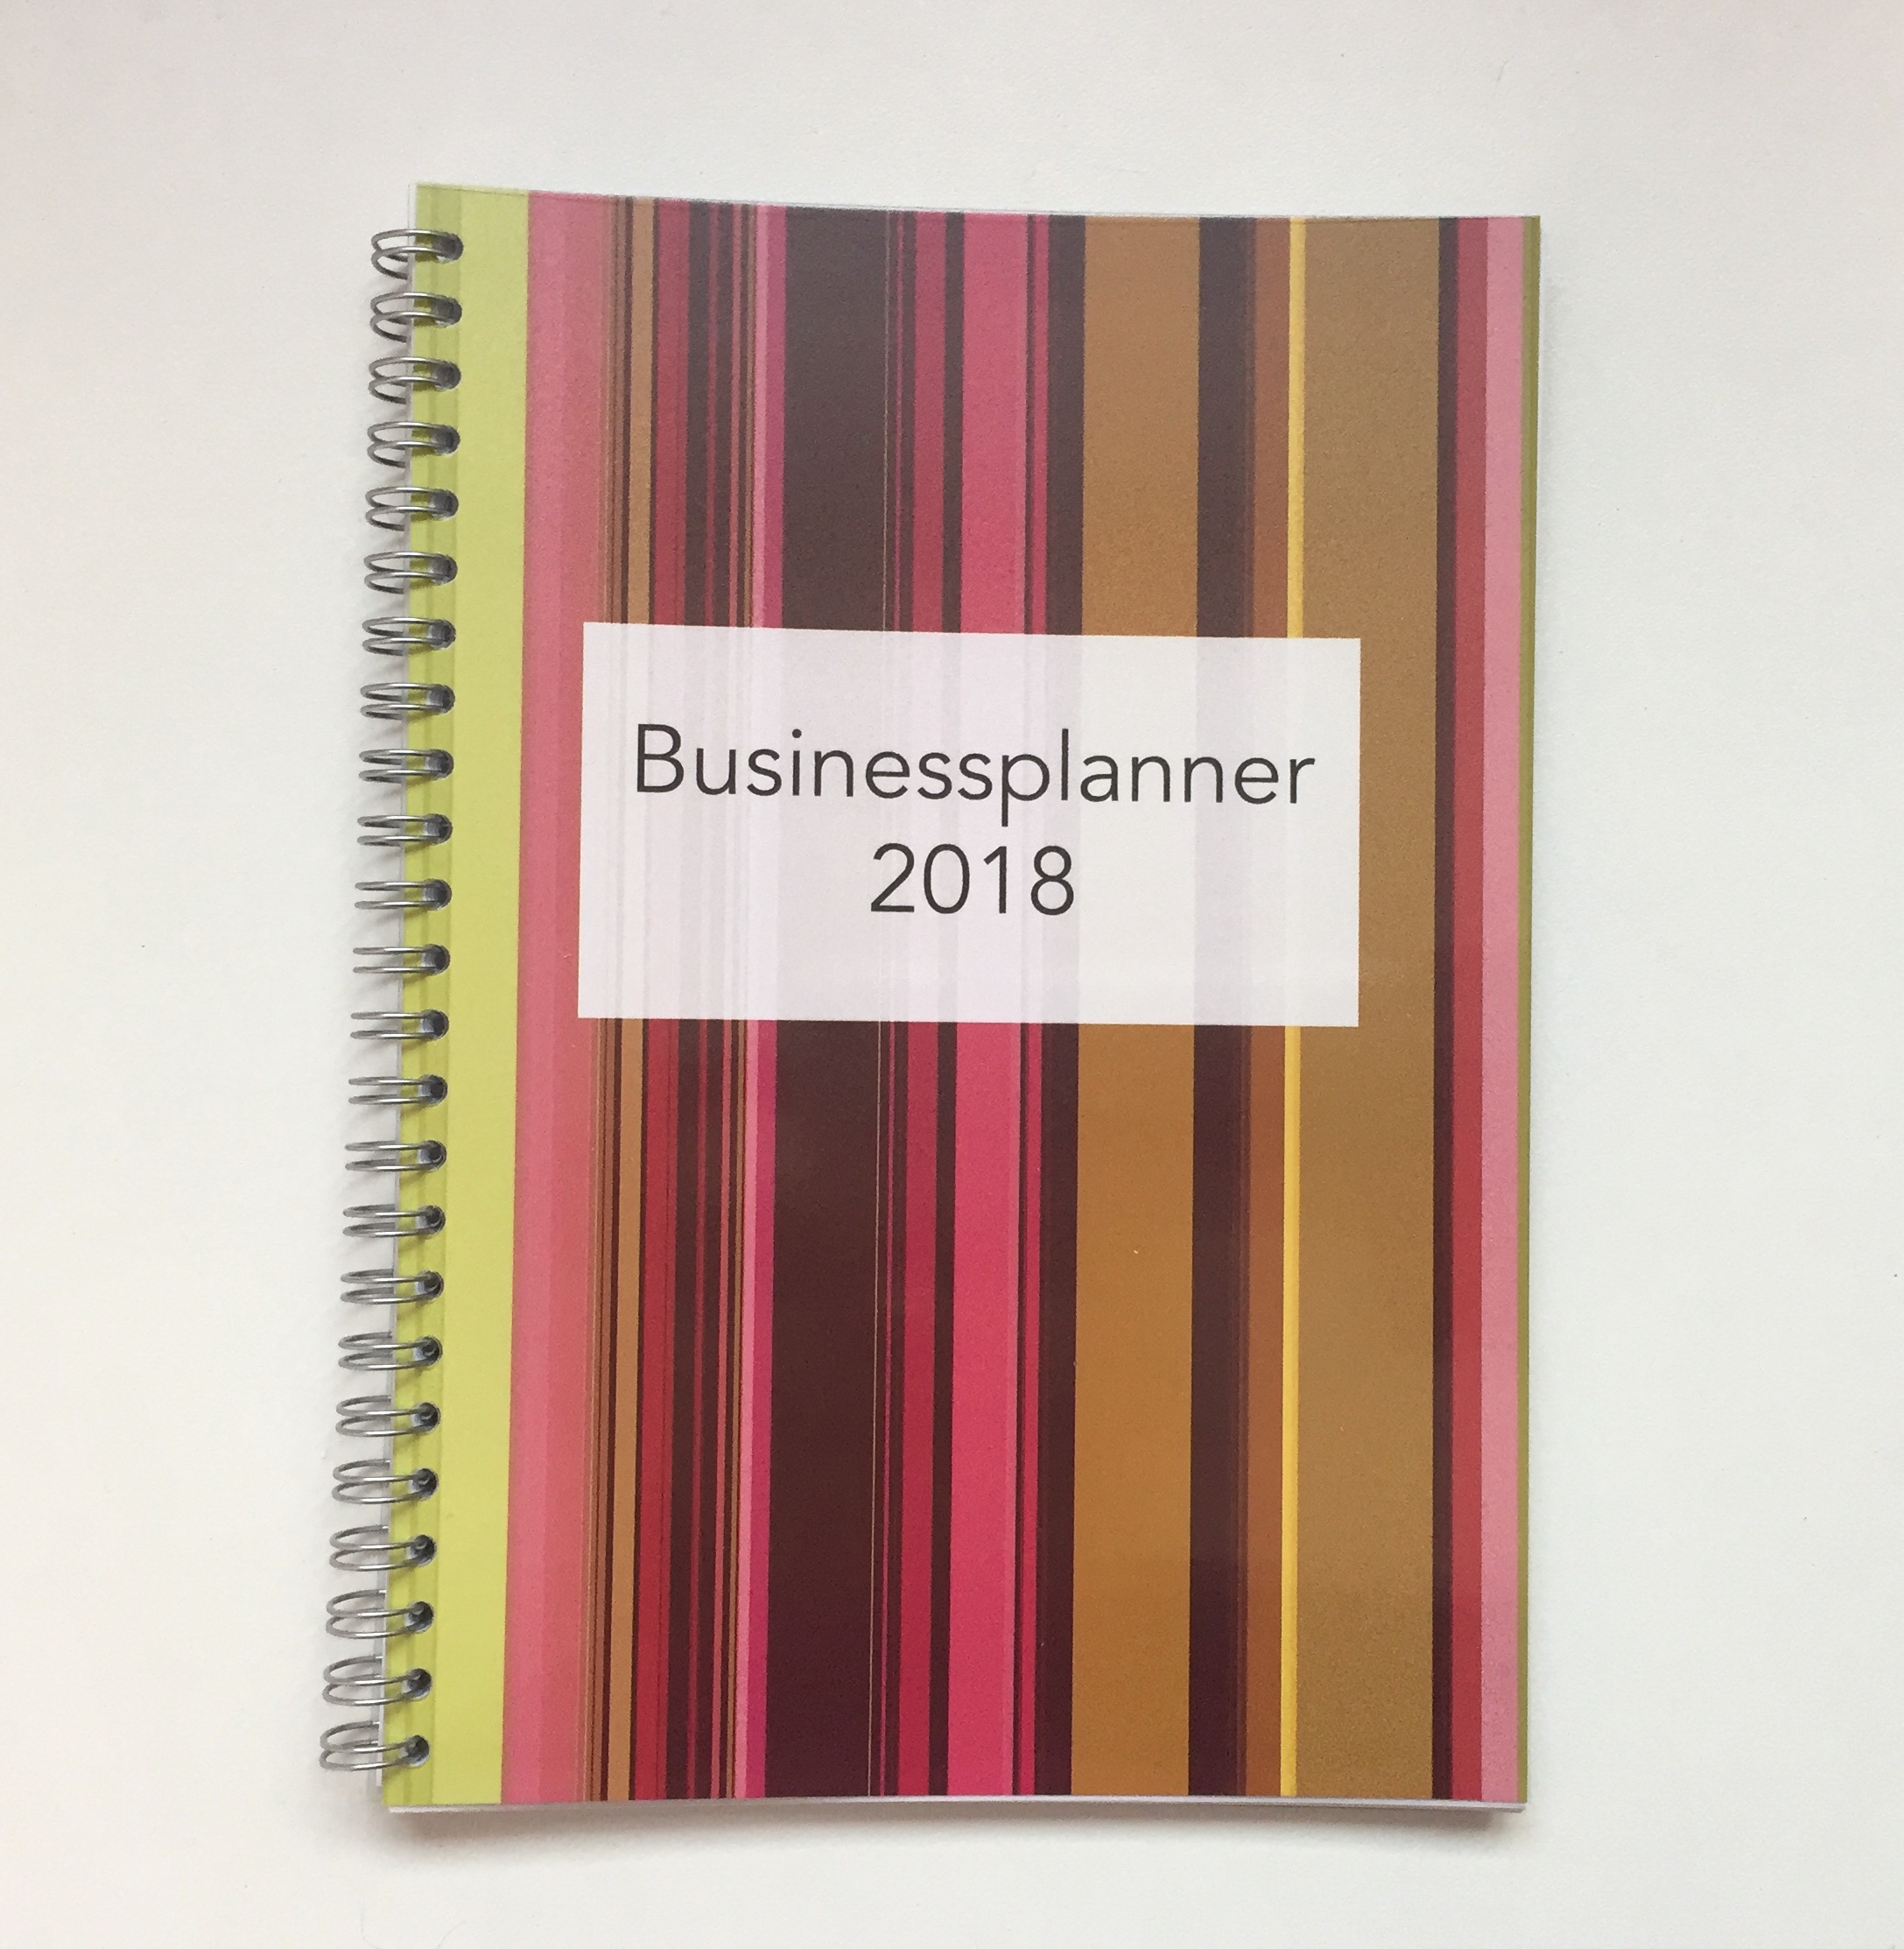 Businessplanner 2018